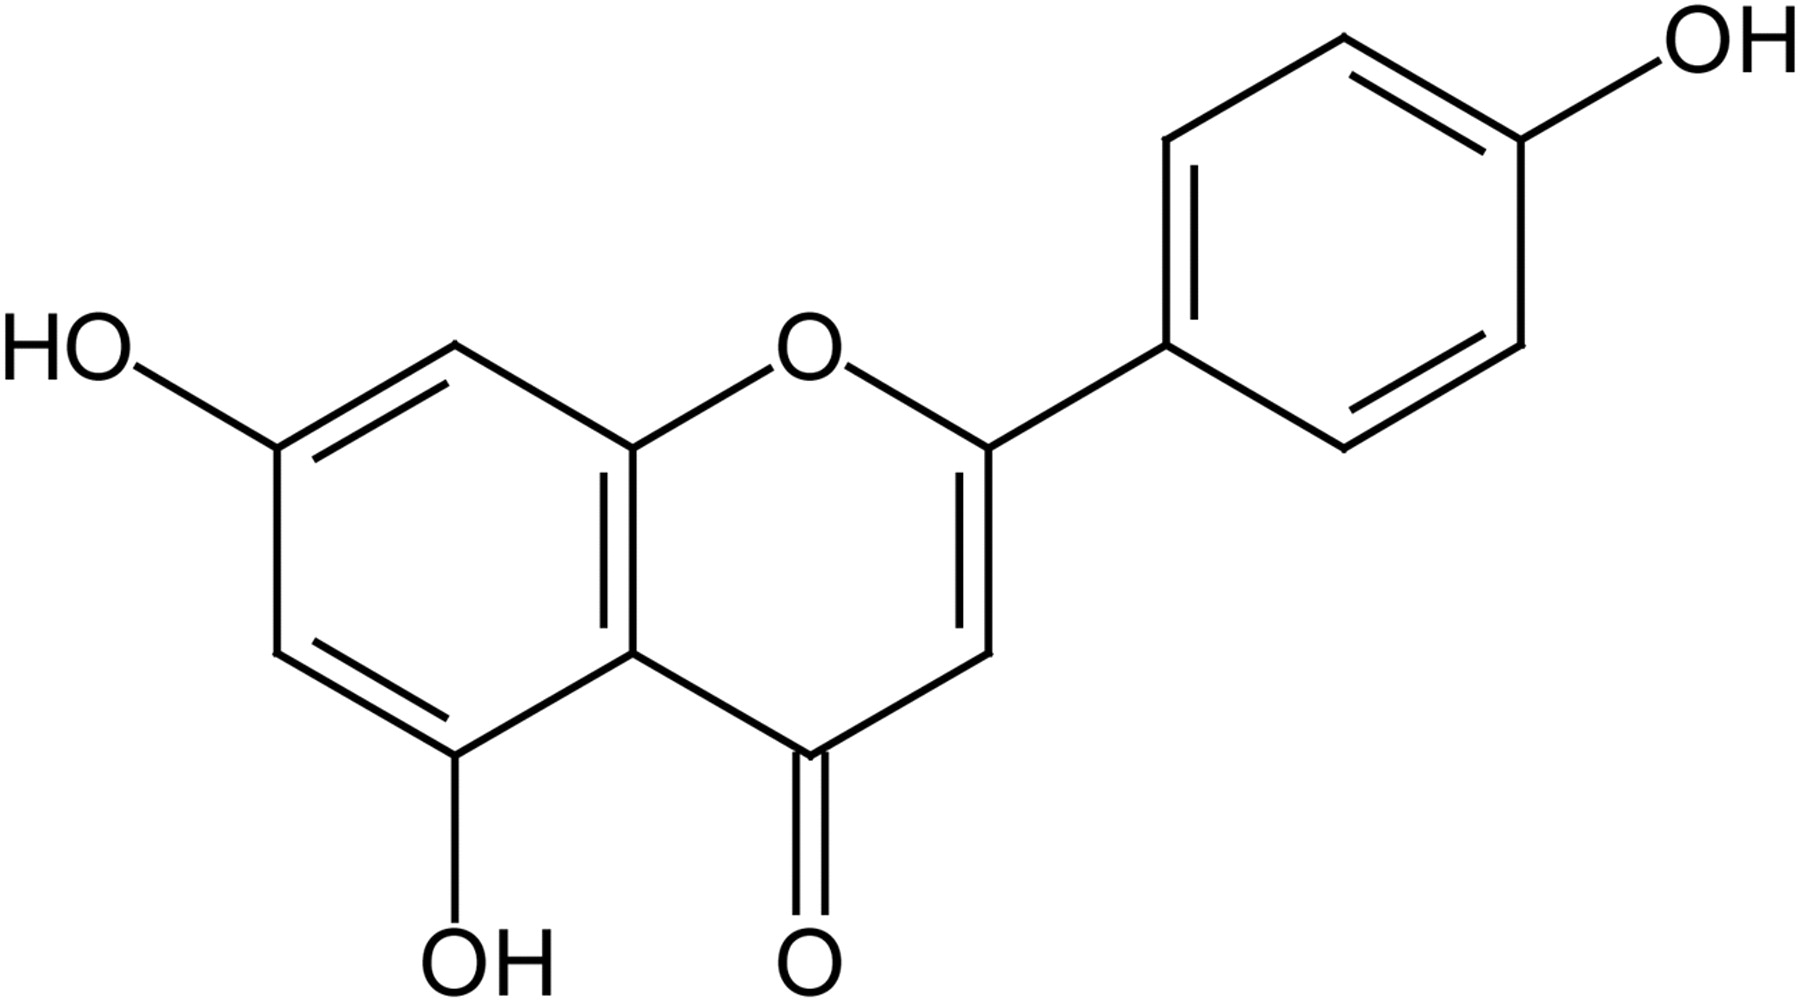 pharmacokinetics and metabolism of apigenin in female and